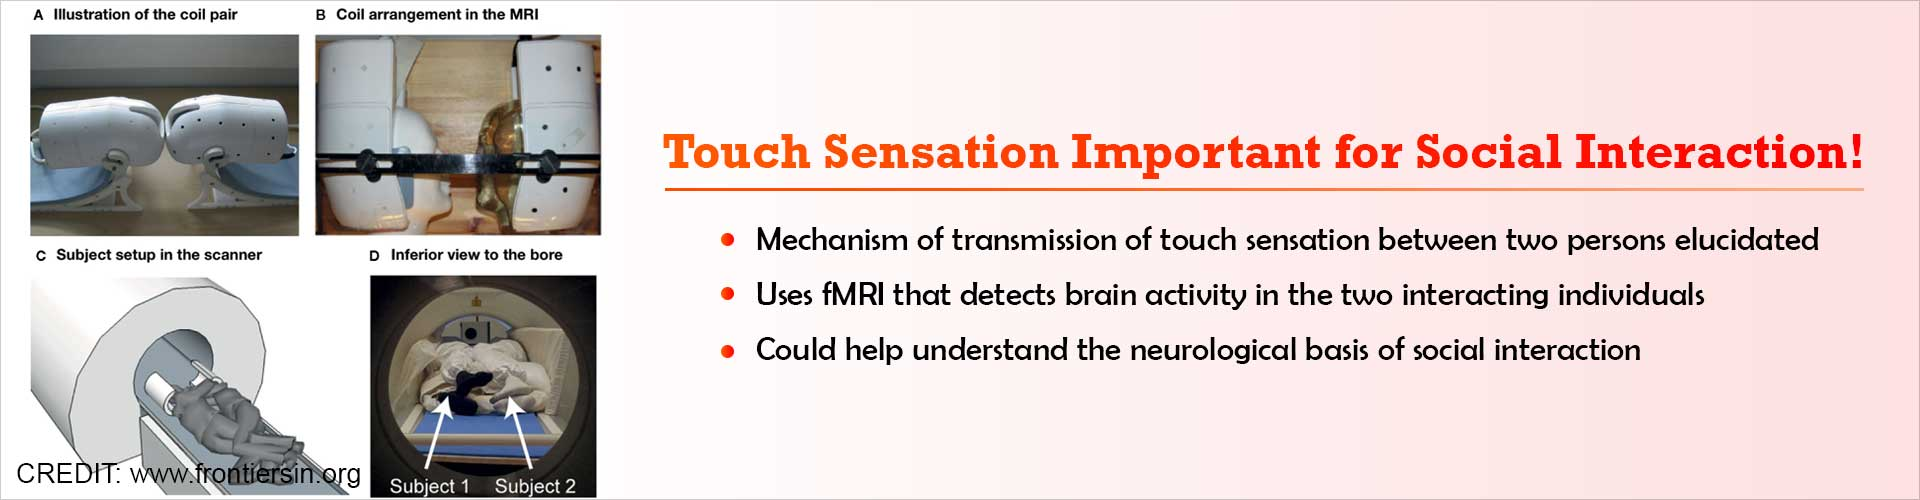 Touch Sensation and Brain Activity Studied Between Couples Using FMRI